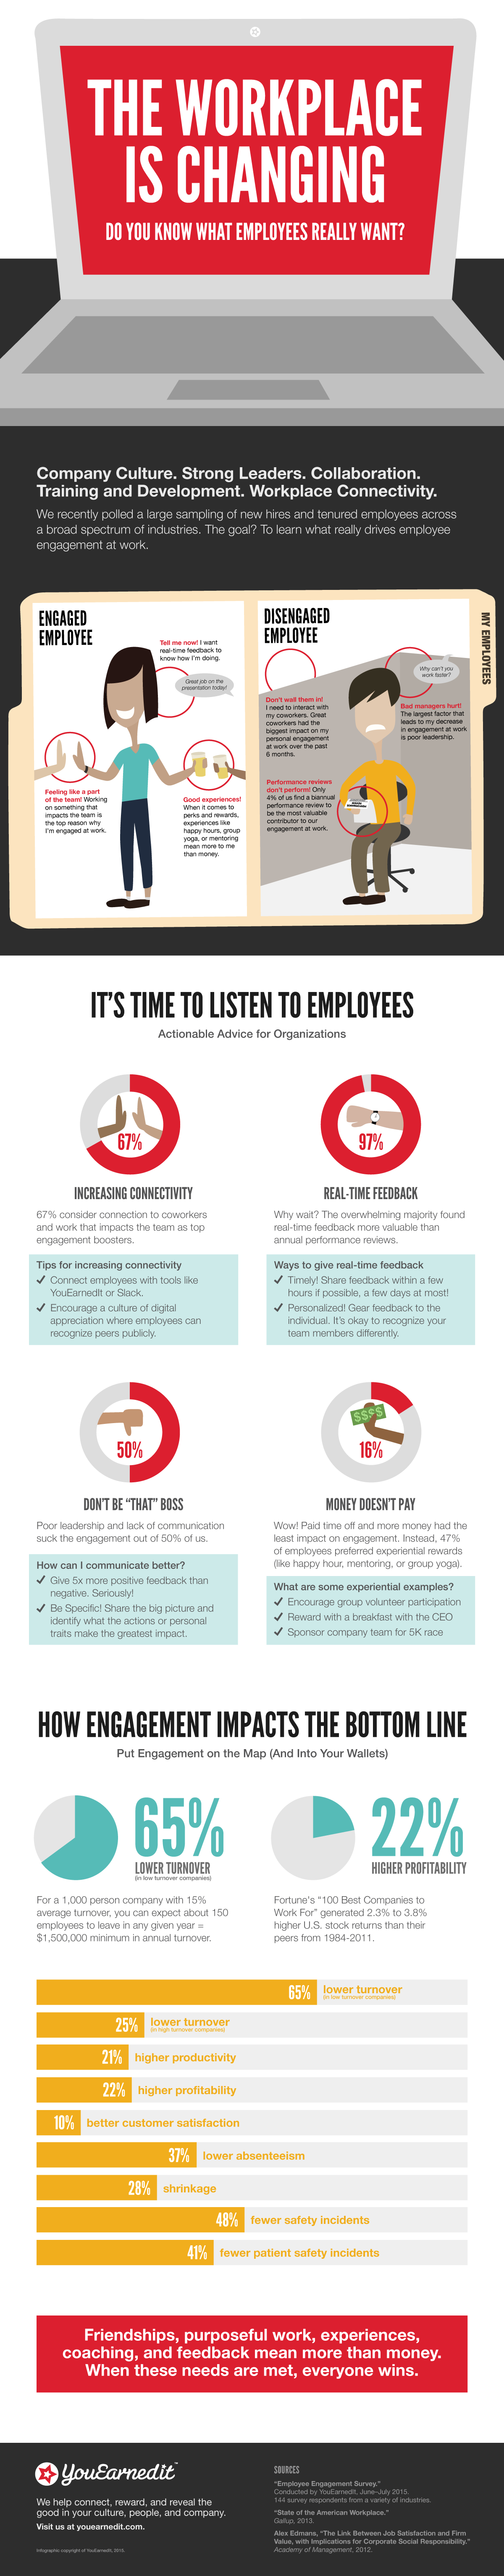 The Workplace is Changing #infographic